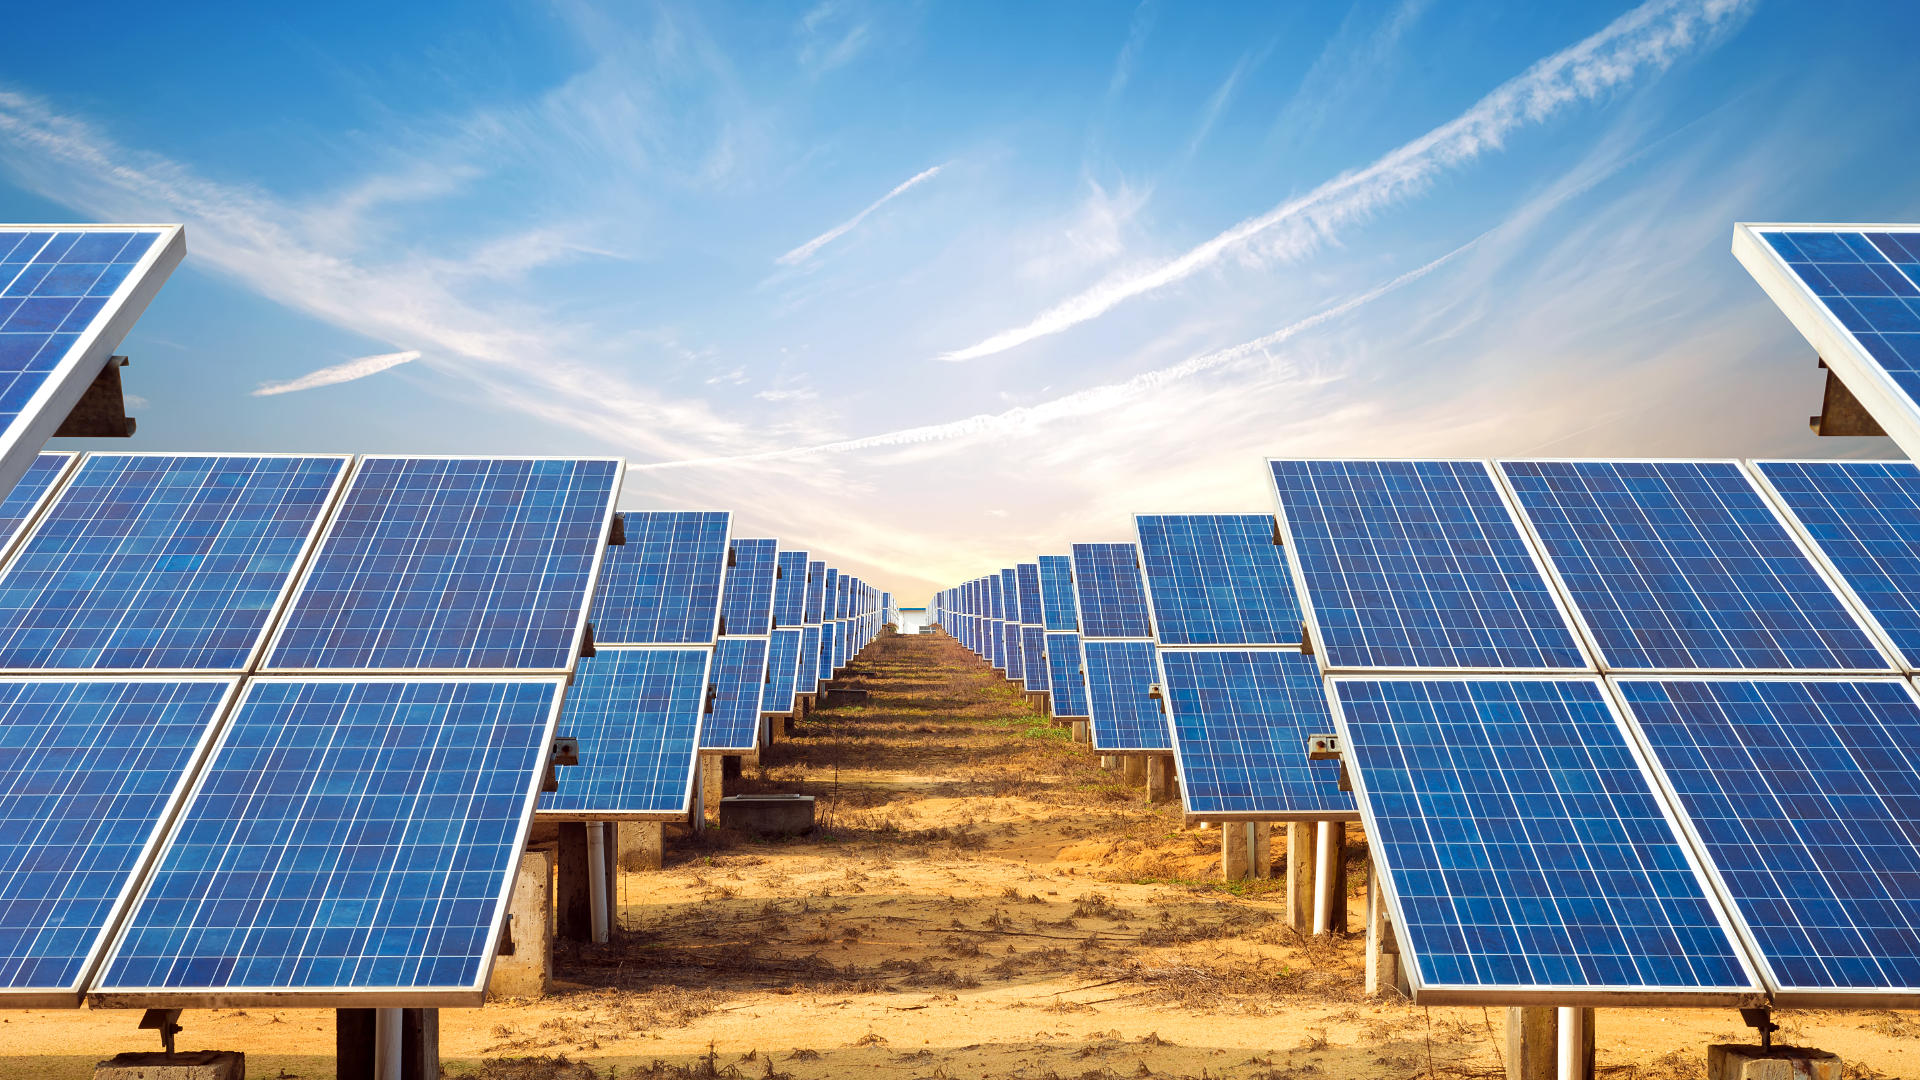 $40 million investment for new solar power and battery storage systems in Queensland